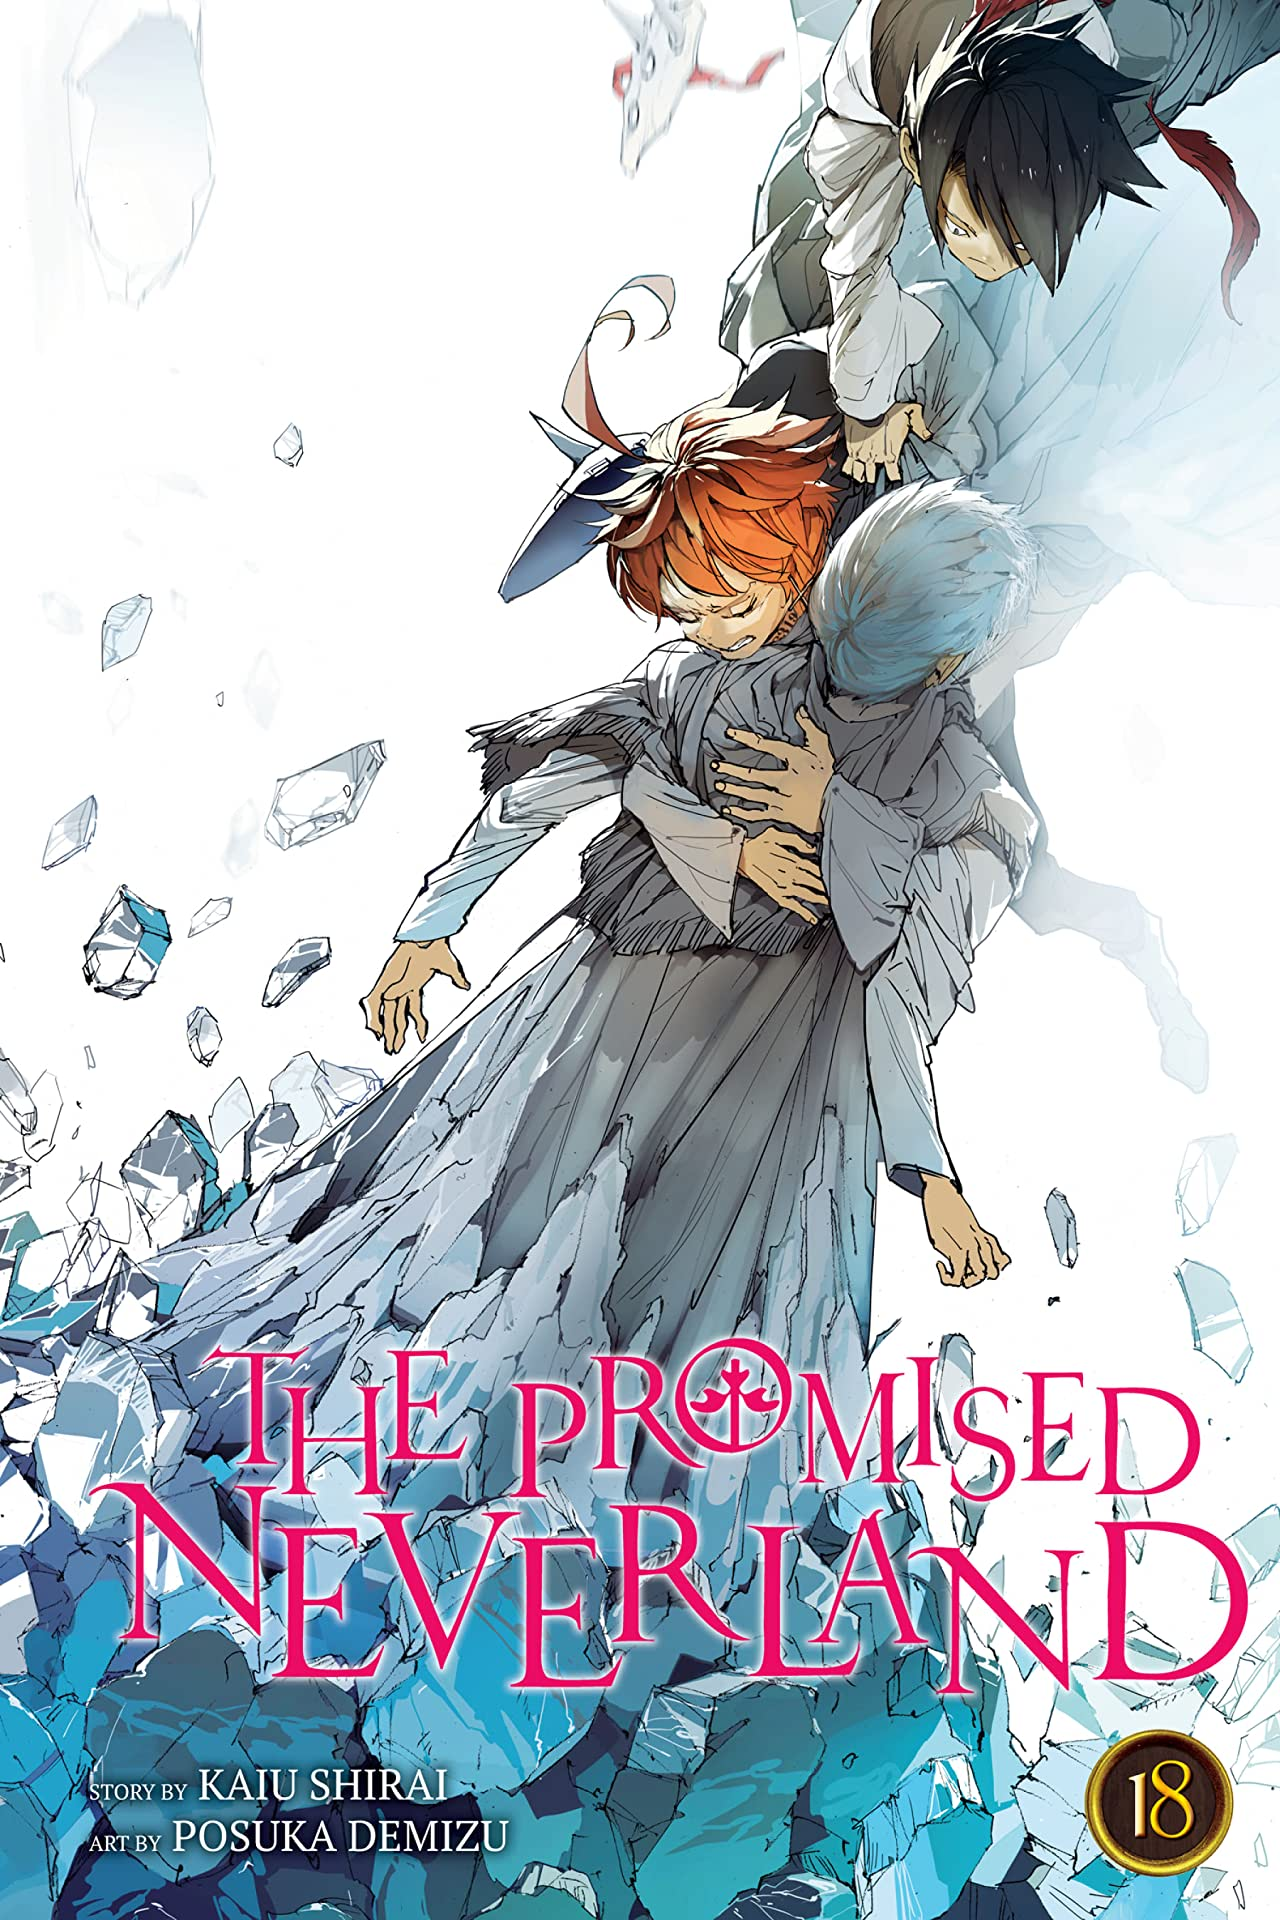 The Promised Neverland Vol. 18: Never Be Alone